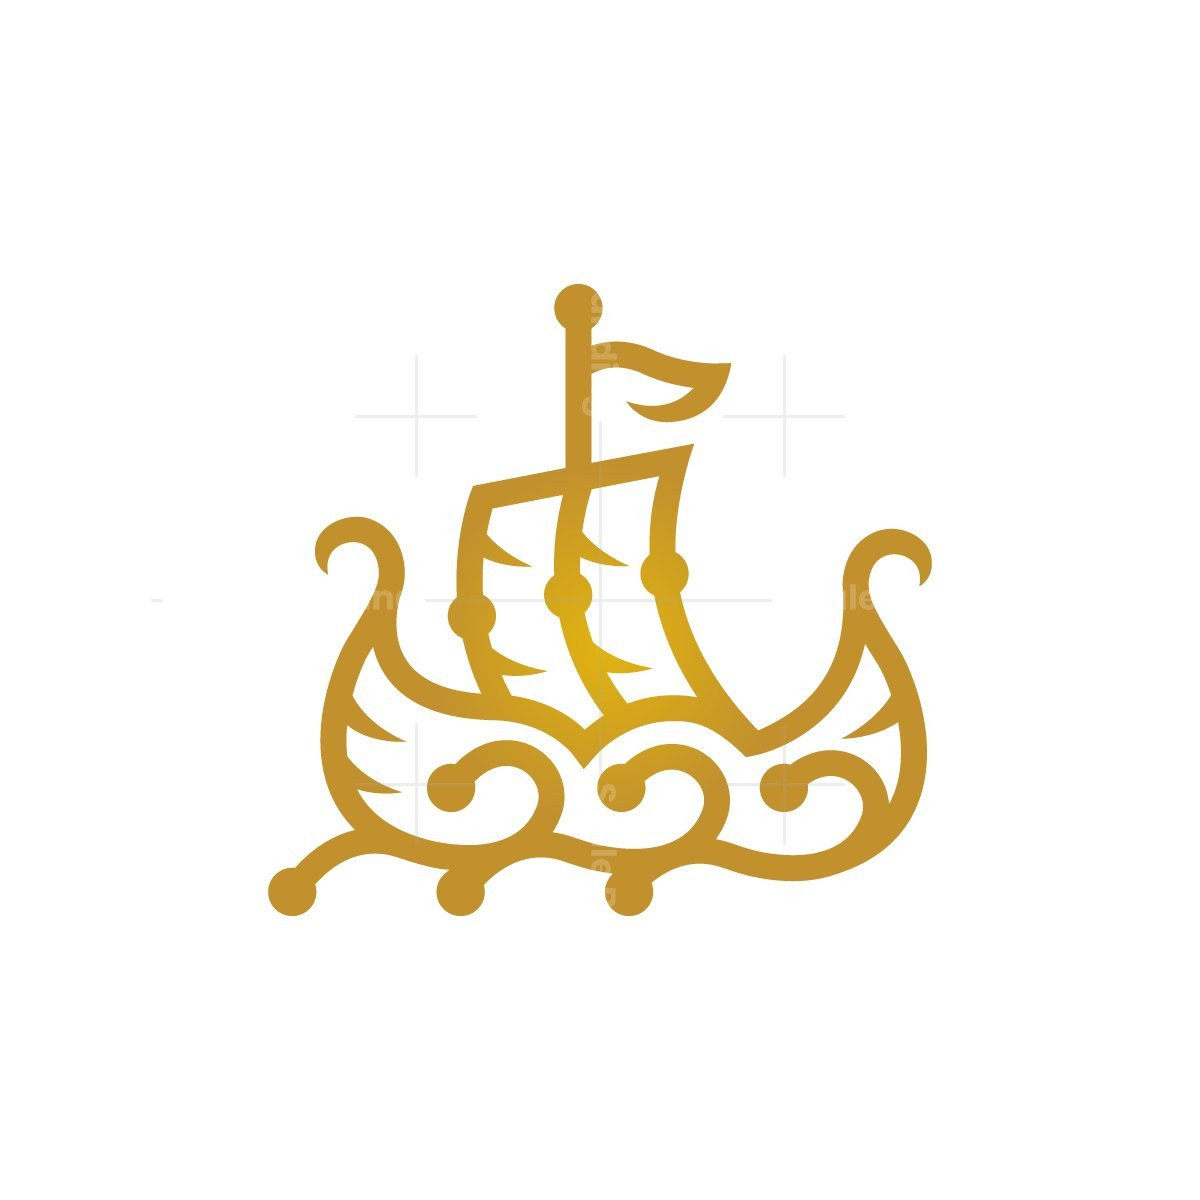 Golden Viking Ship Logo